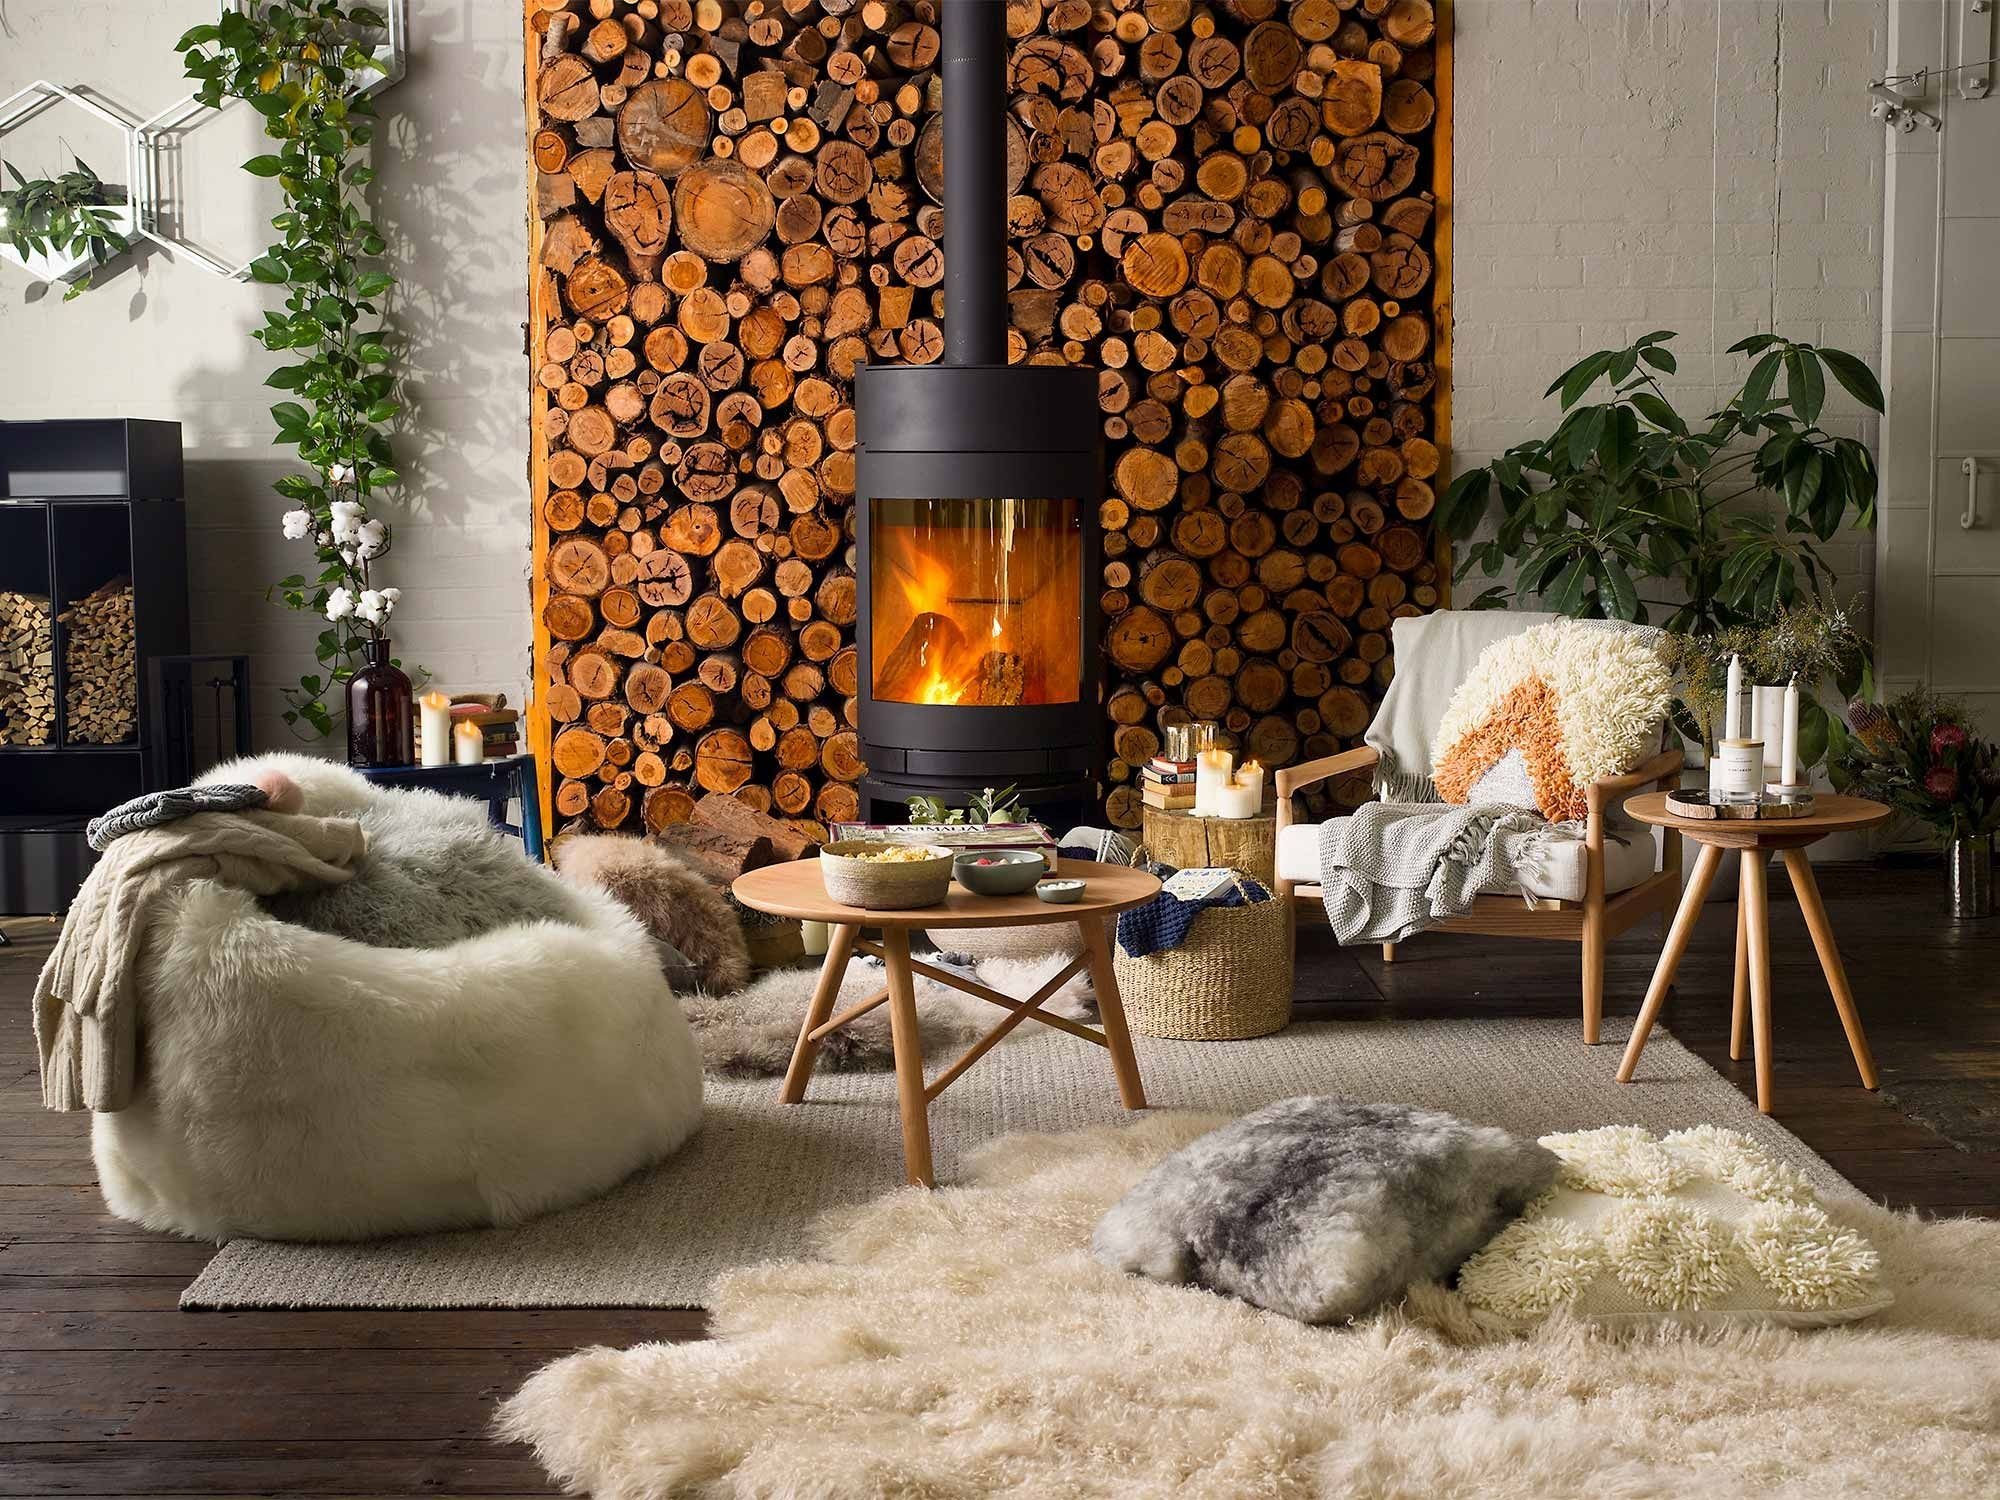 hygge-decor-fireplace-warm-family-winter-gathering.jpg